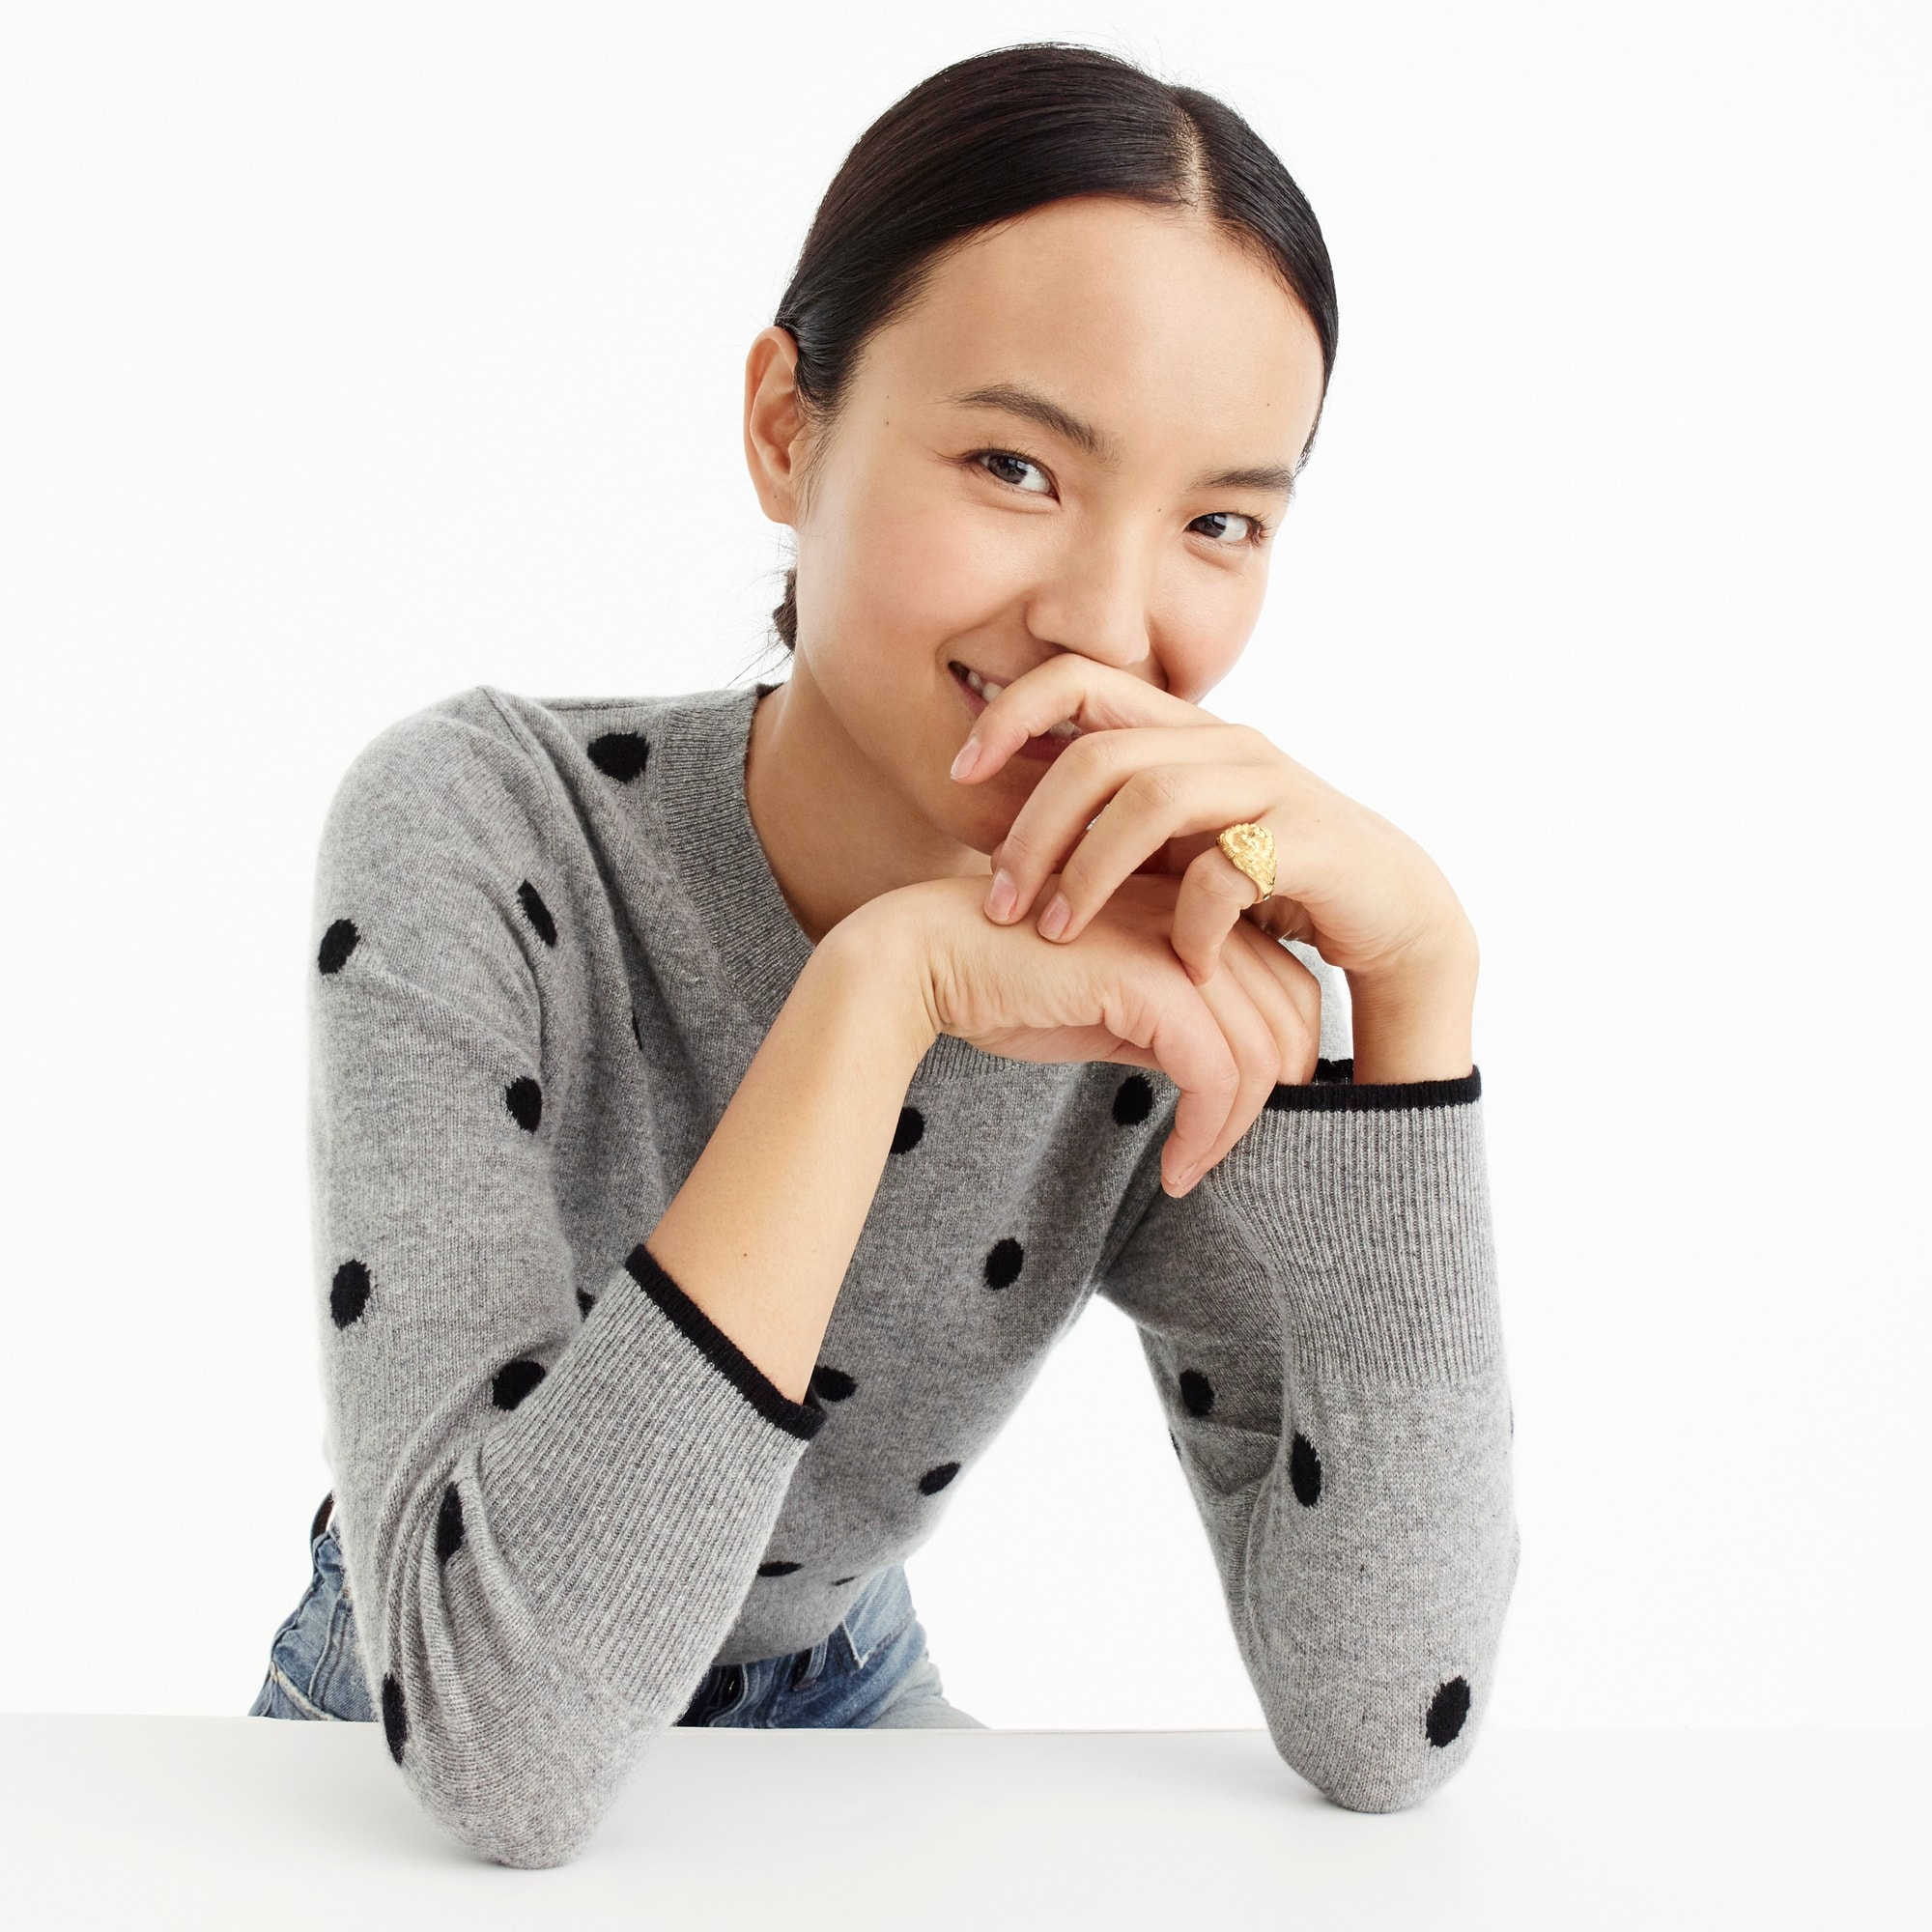 Image 1 for Polka dot sweater in everyday cashmere